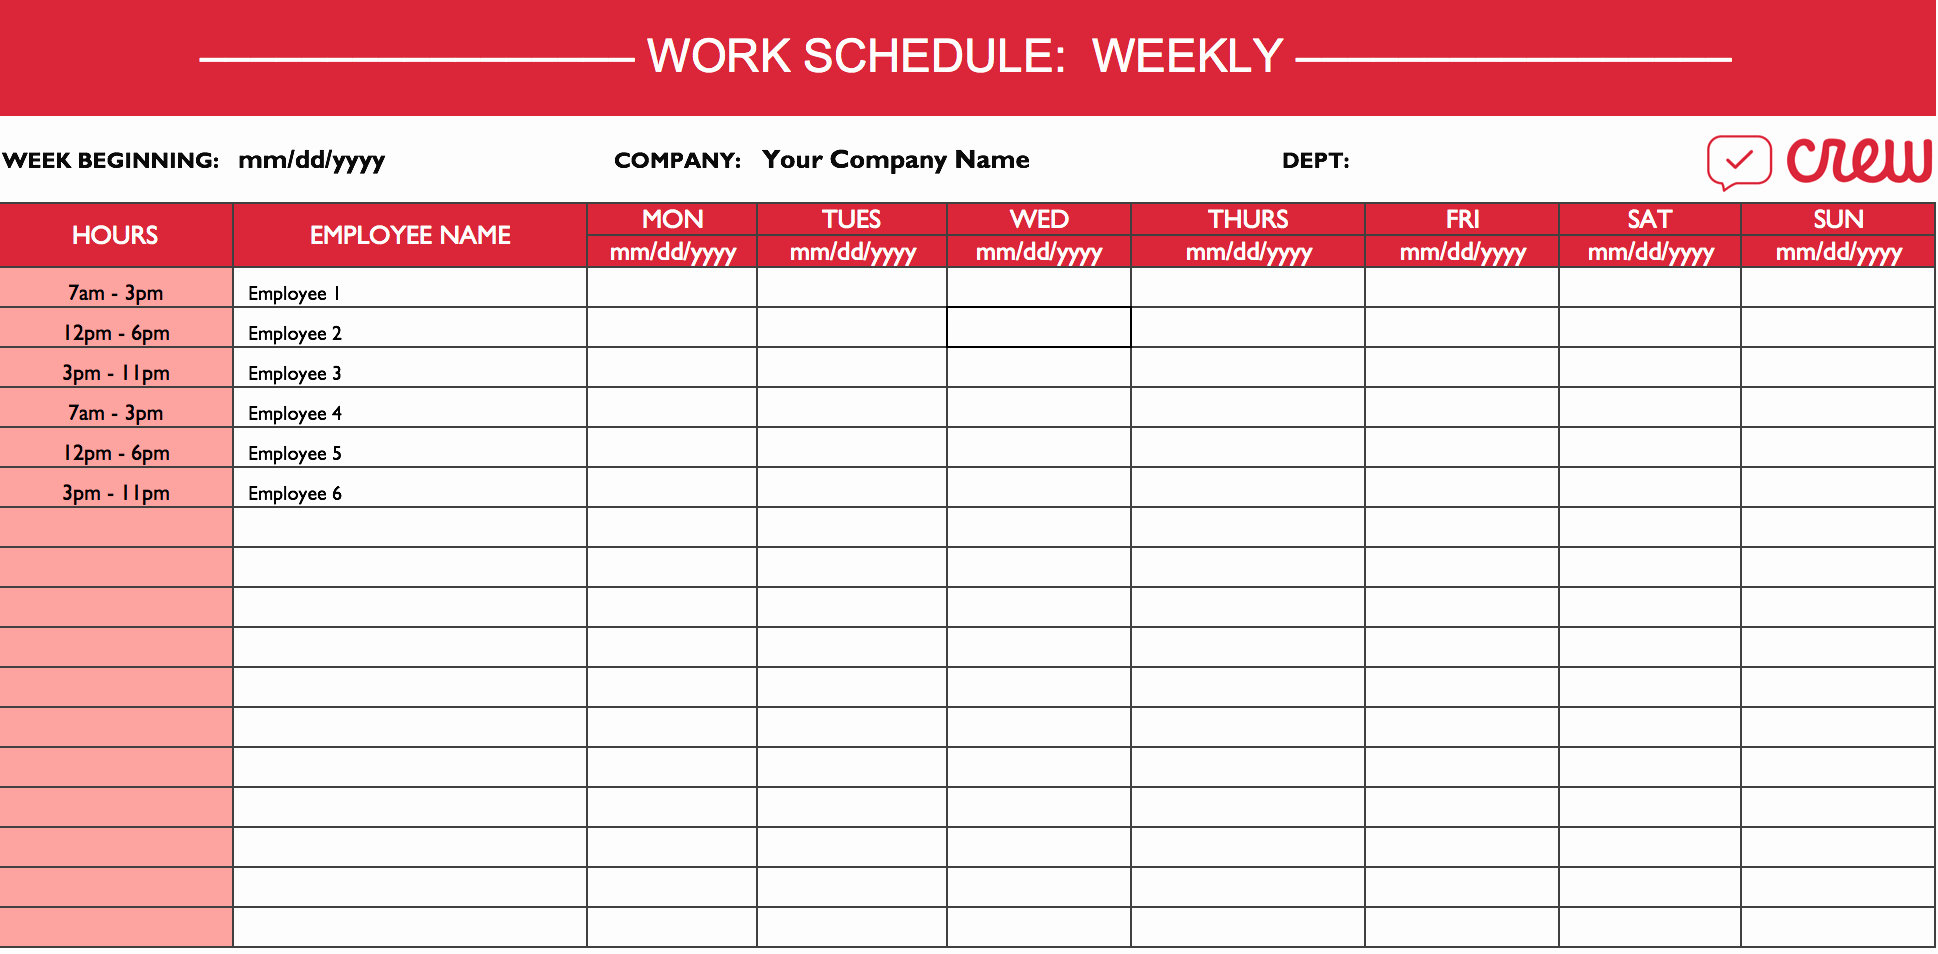 Schedule C Excel Template Awesome Weekly Work Schedule Template I Crew